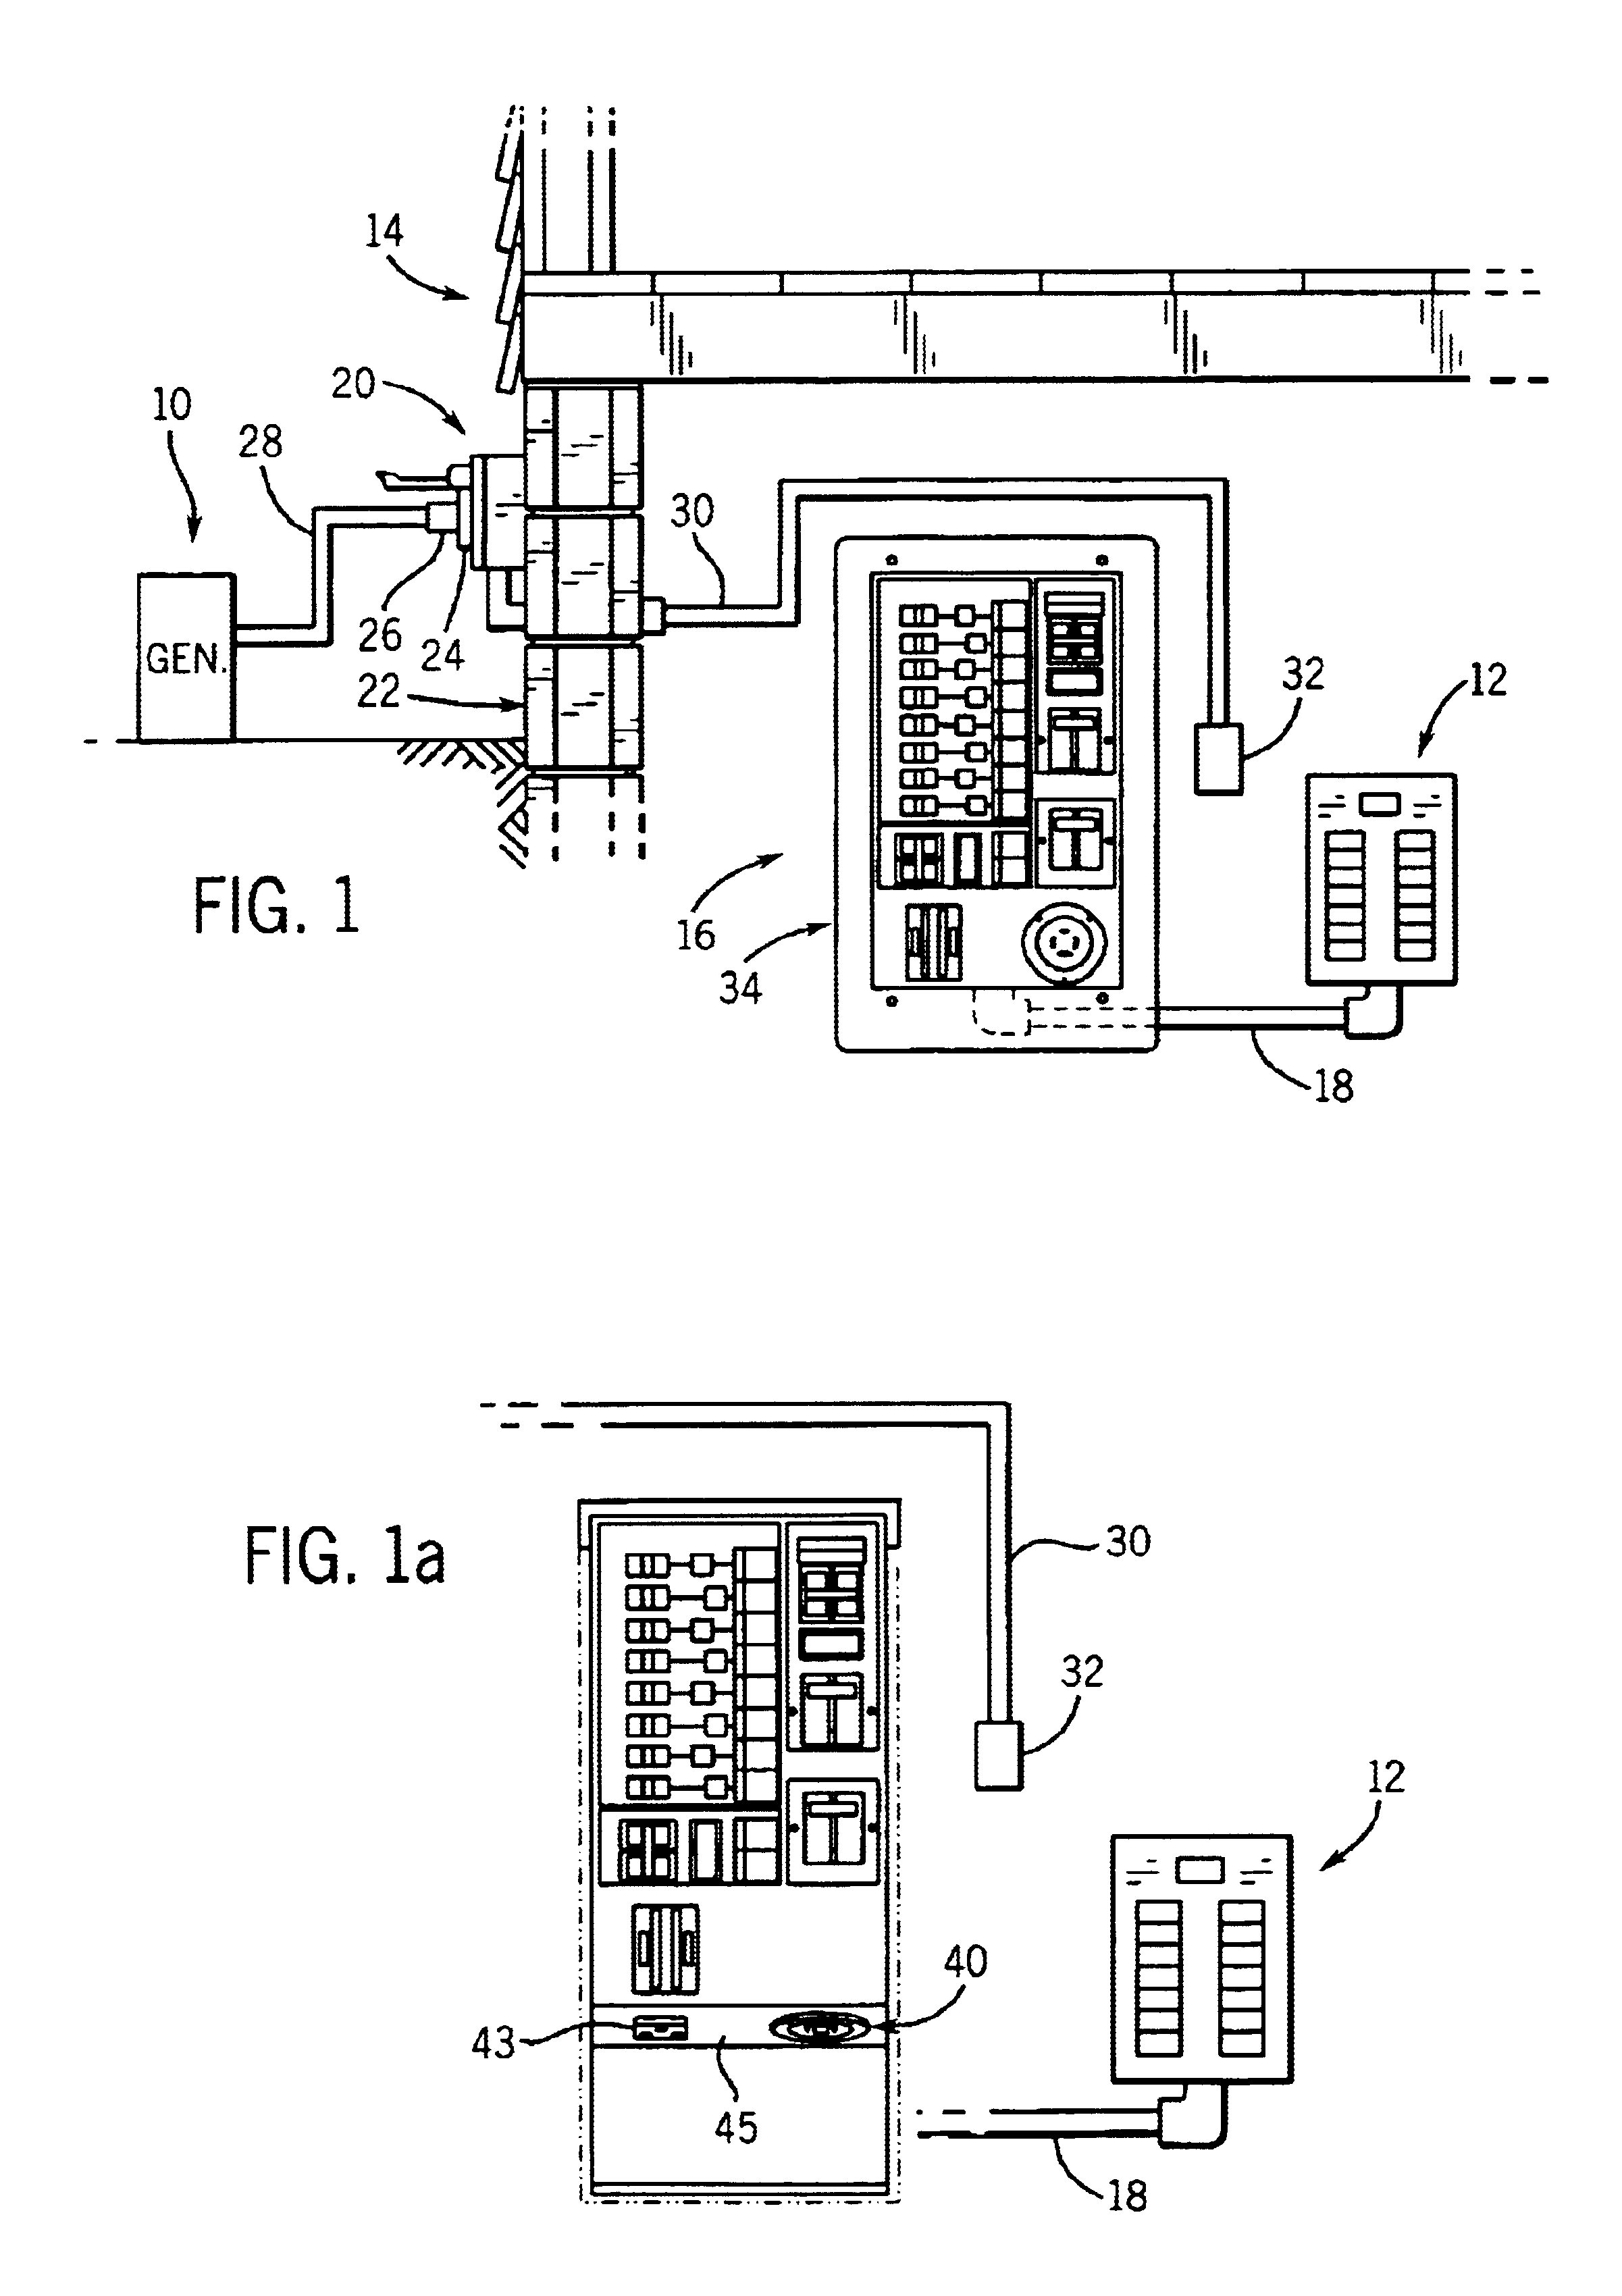 Double Pole Structure : Patent us double pole circuit breaker and switch